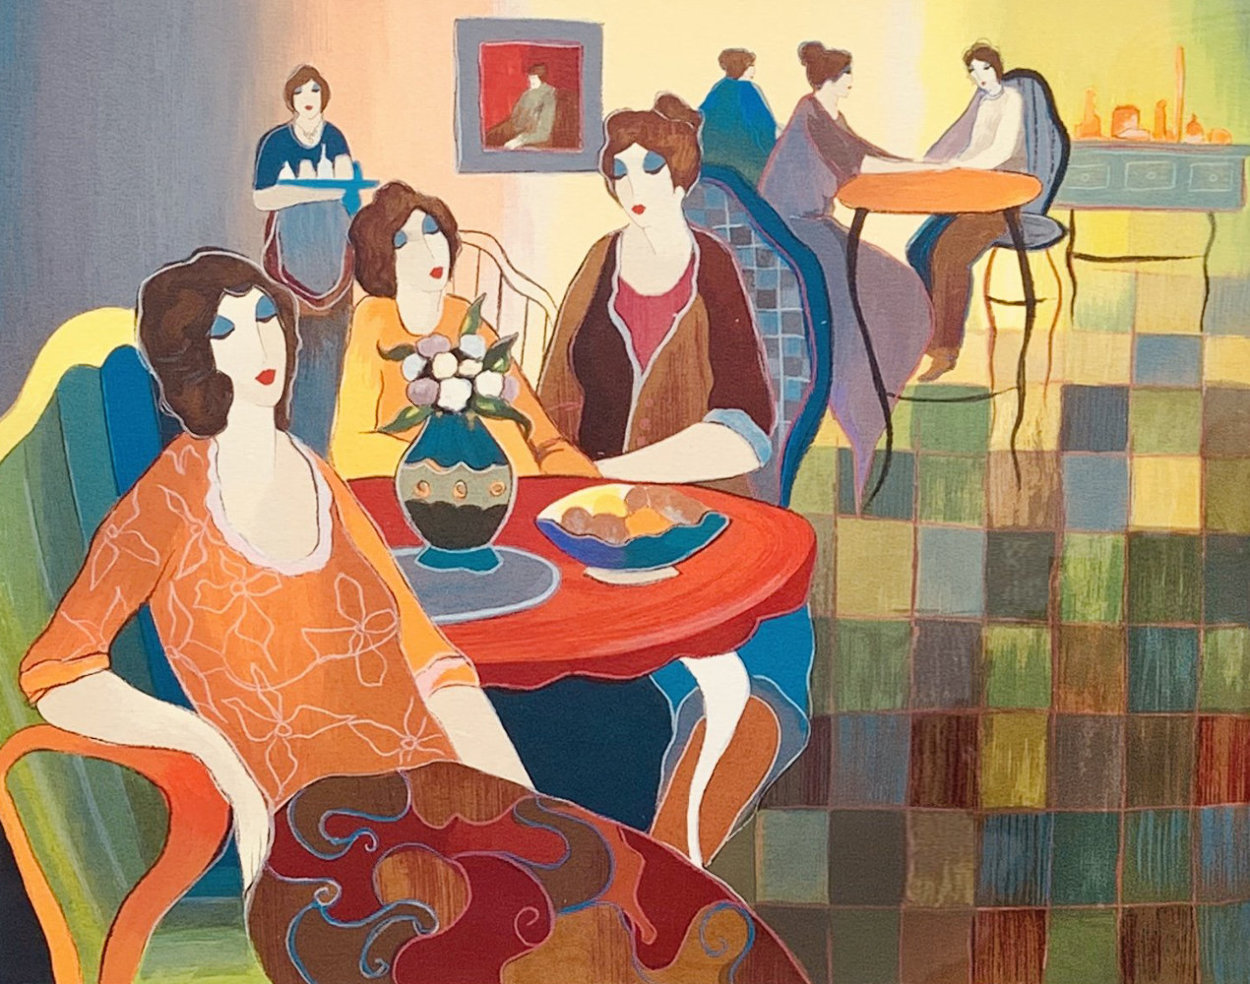 Afternoon Appetizers 2007 Limited Edition Print by Itzchak Tarkay